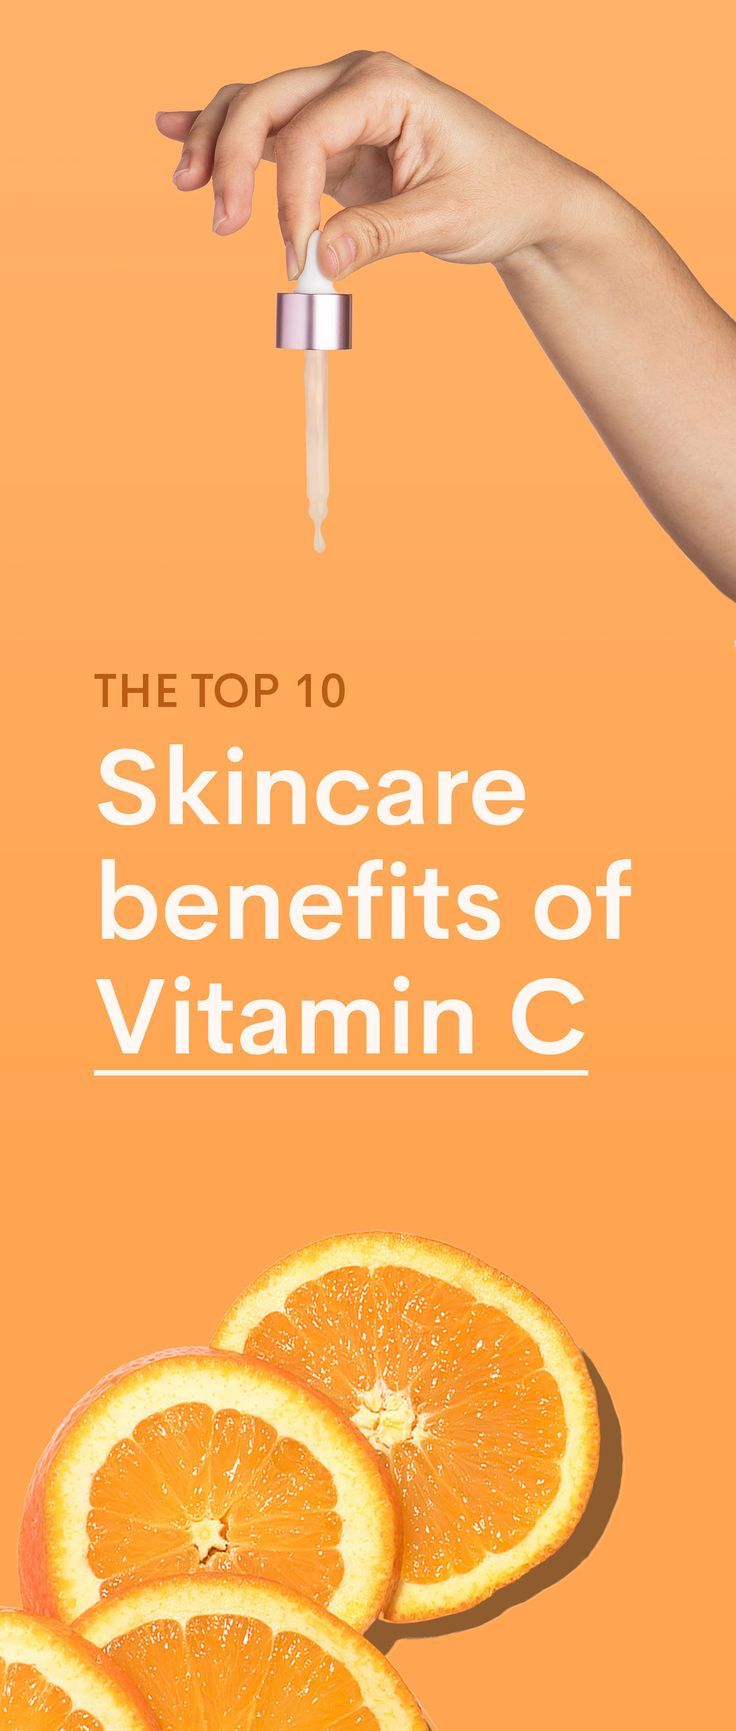 Vitamin C Skin Benefits Why This Ingredient Can Help Your Skin In 2020 Vitamin C Benefits Skin Benefits Skin Care Benefits